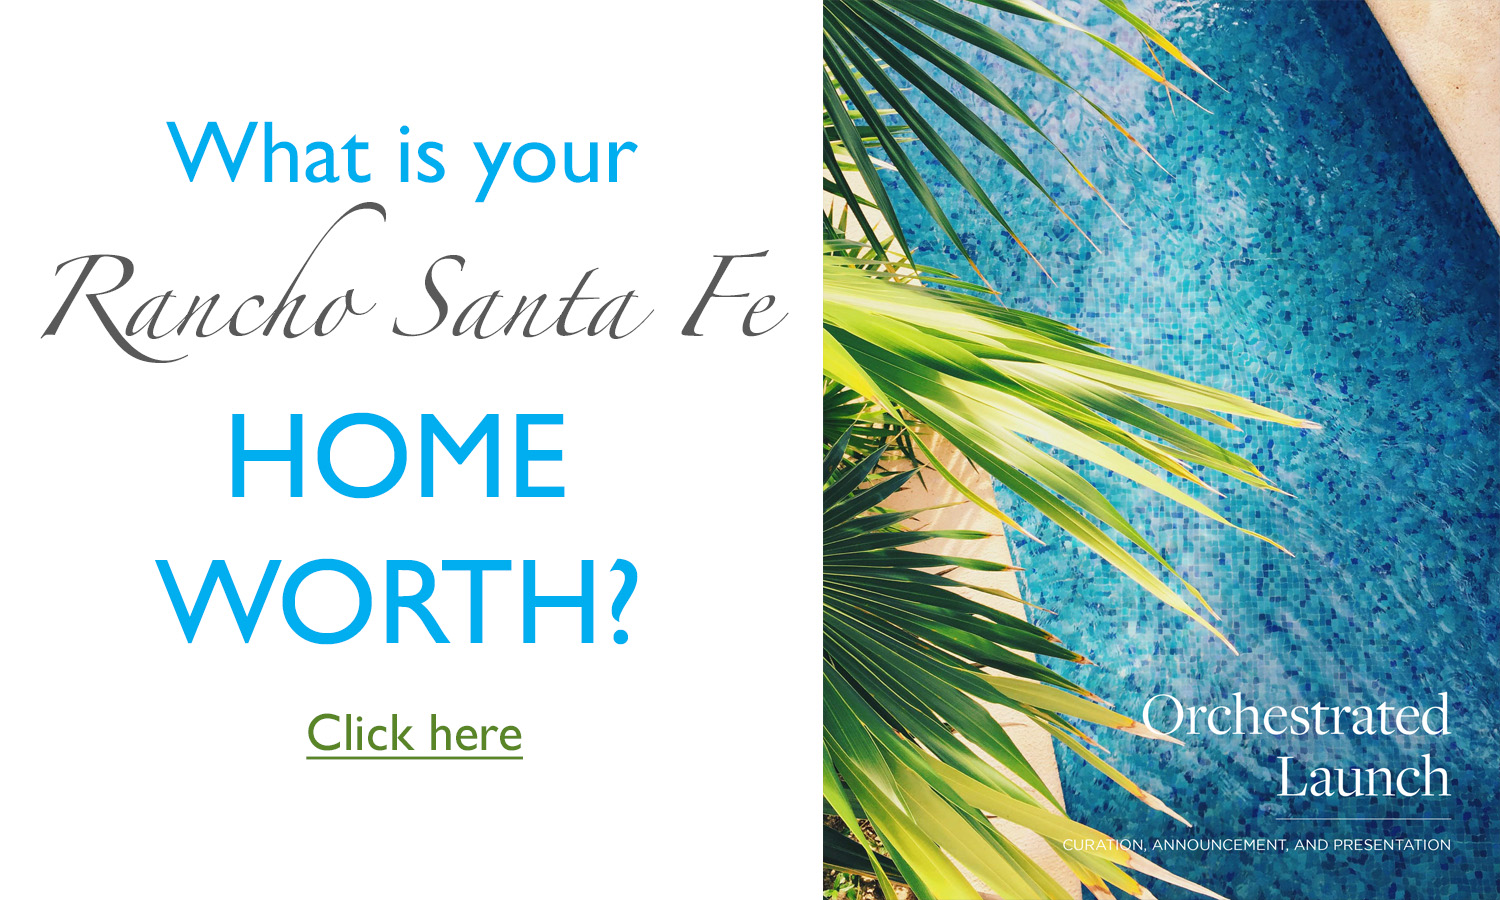 What is your home worth in Rancho Santa Fe?